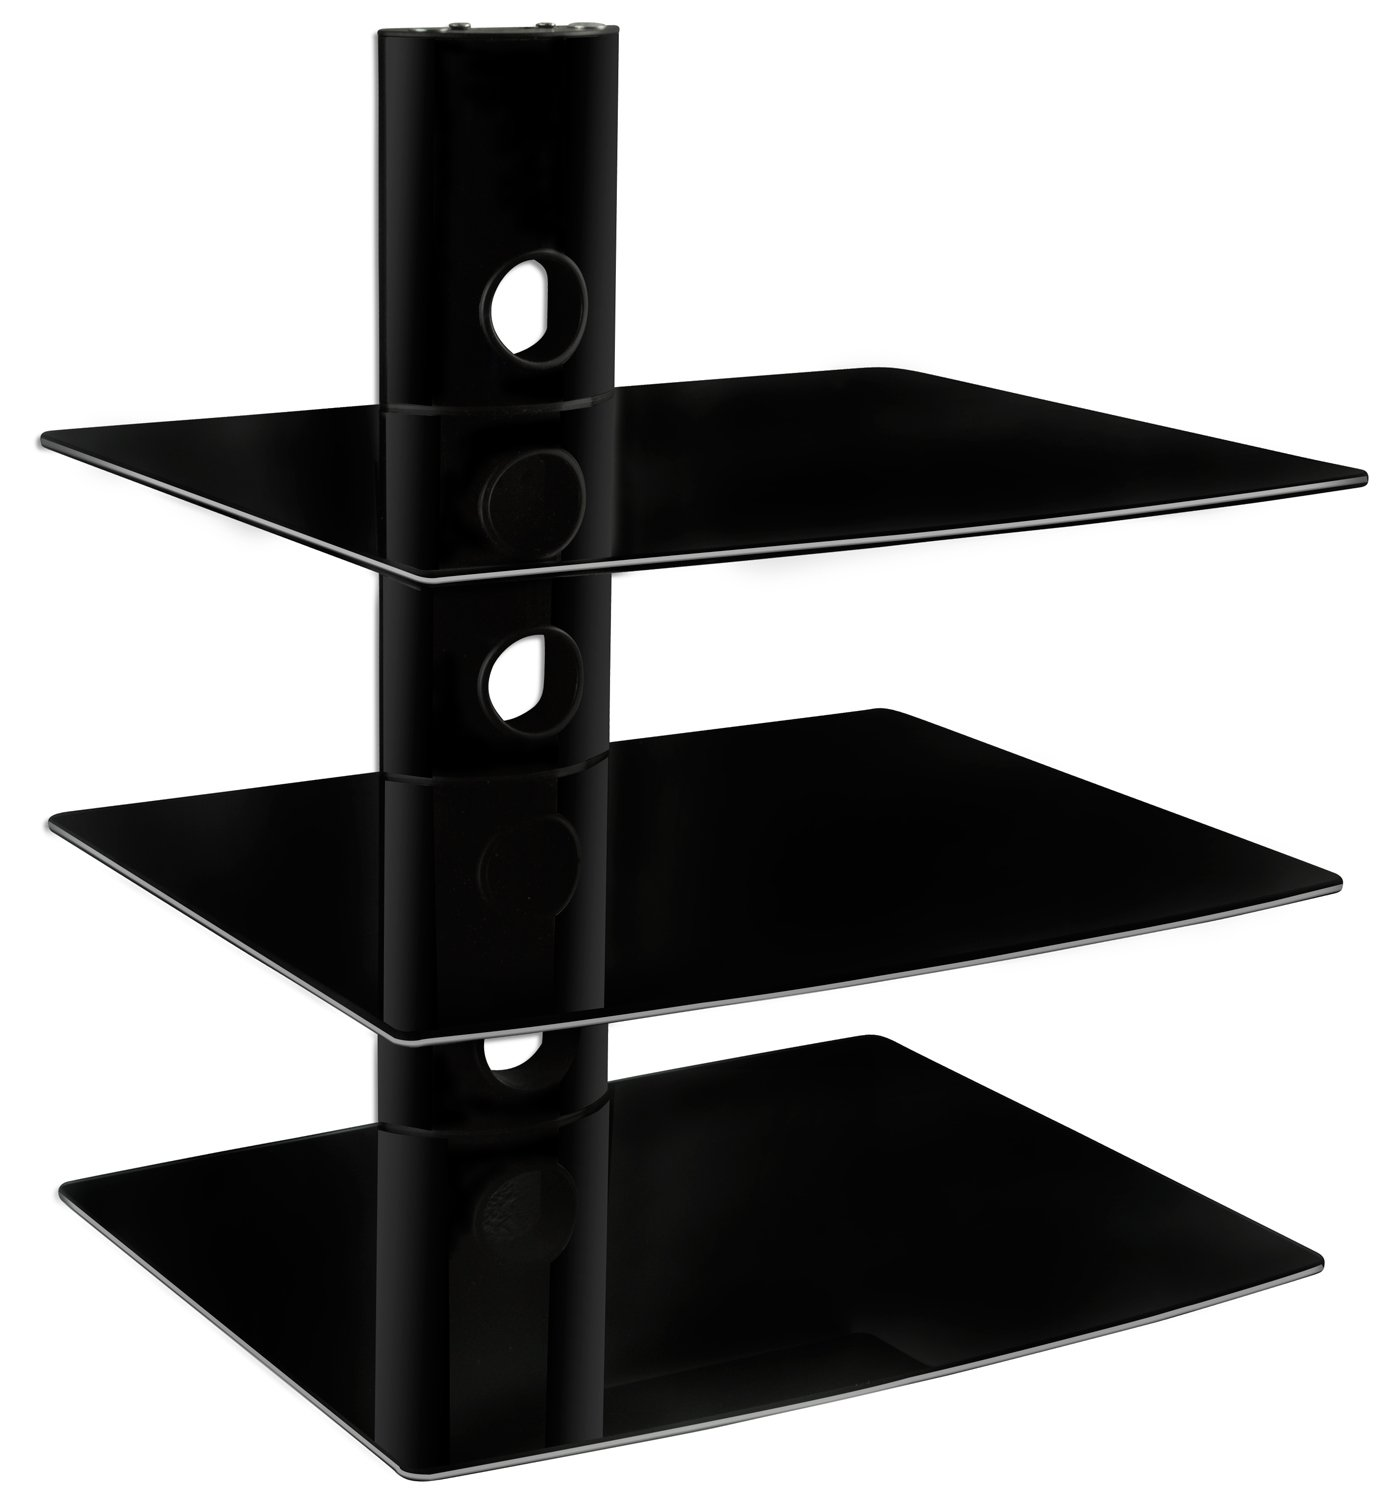 Mount-It! MI-803 Floating Wall Mounted Shelf Bracket Stand for AV Receiver, Component, Cable Box, Playstation4, Xbox1, VCR Player, Blue Ray DVD Player, Projector, Load Capacity 66 lbs, Three Shelves, Tinted Tempered Glass